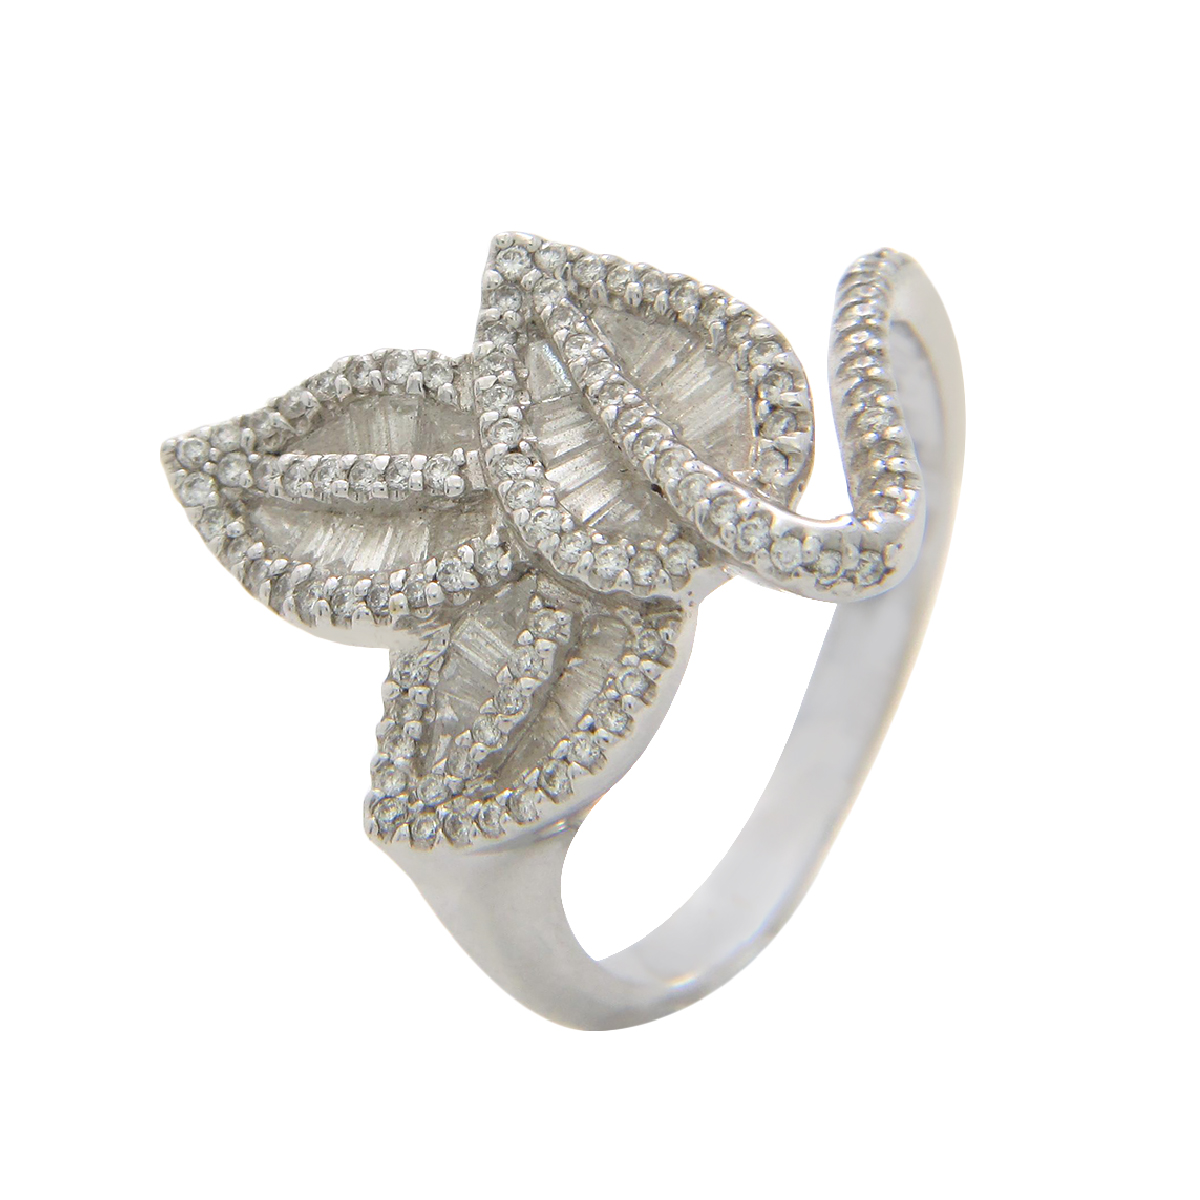 Ice Cubes Ring - ICE128